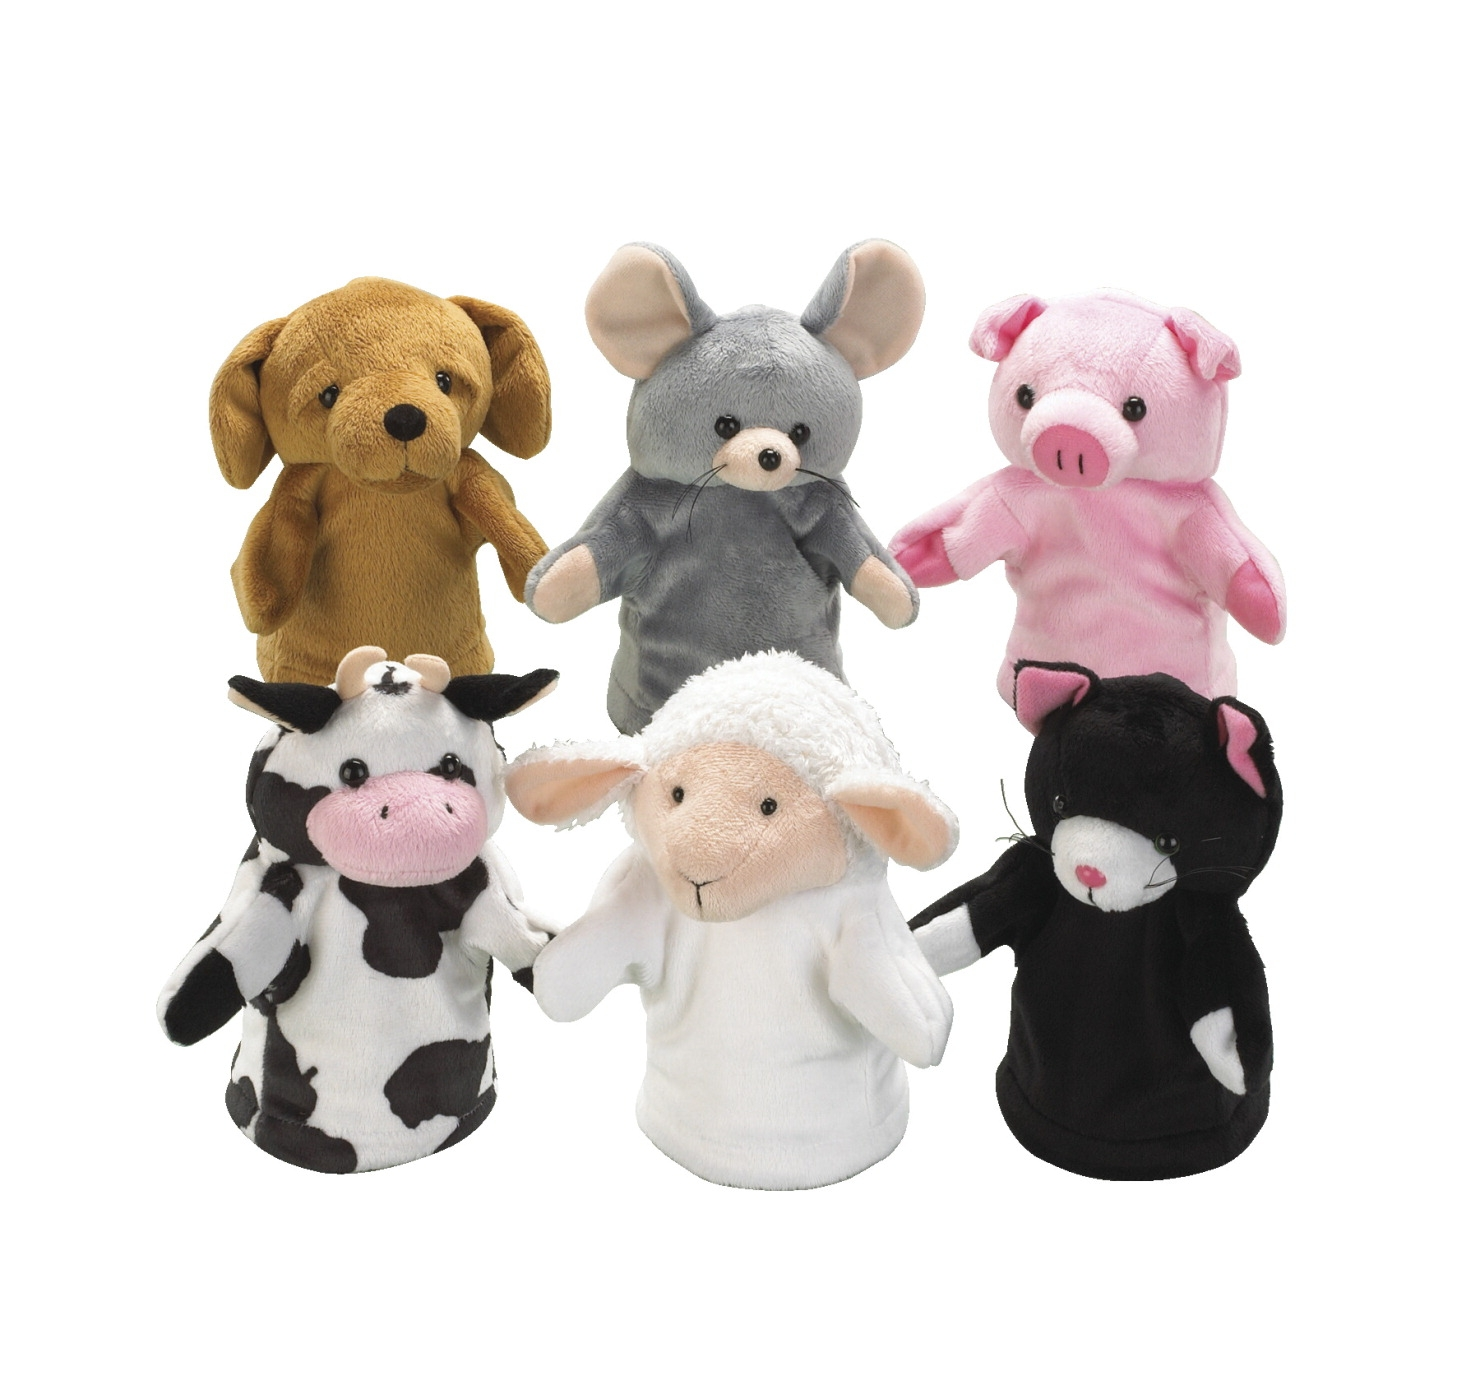 Toys Dolls Playsets & Toy Figures Puppet Theaters - 1353644 - Childcraft Farm Animal Puppets; Set Of 6 1353644